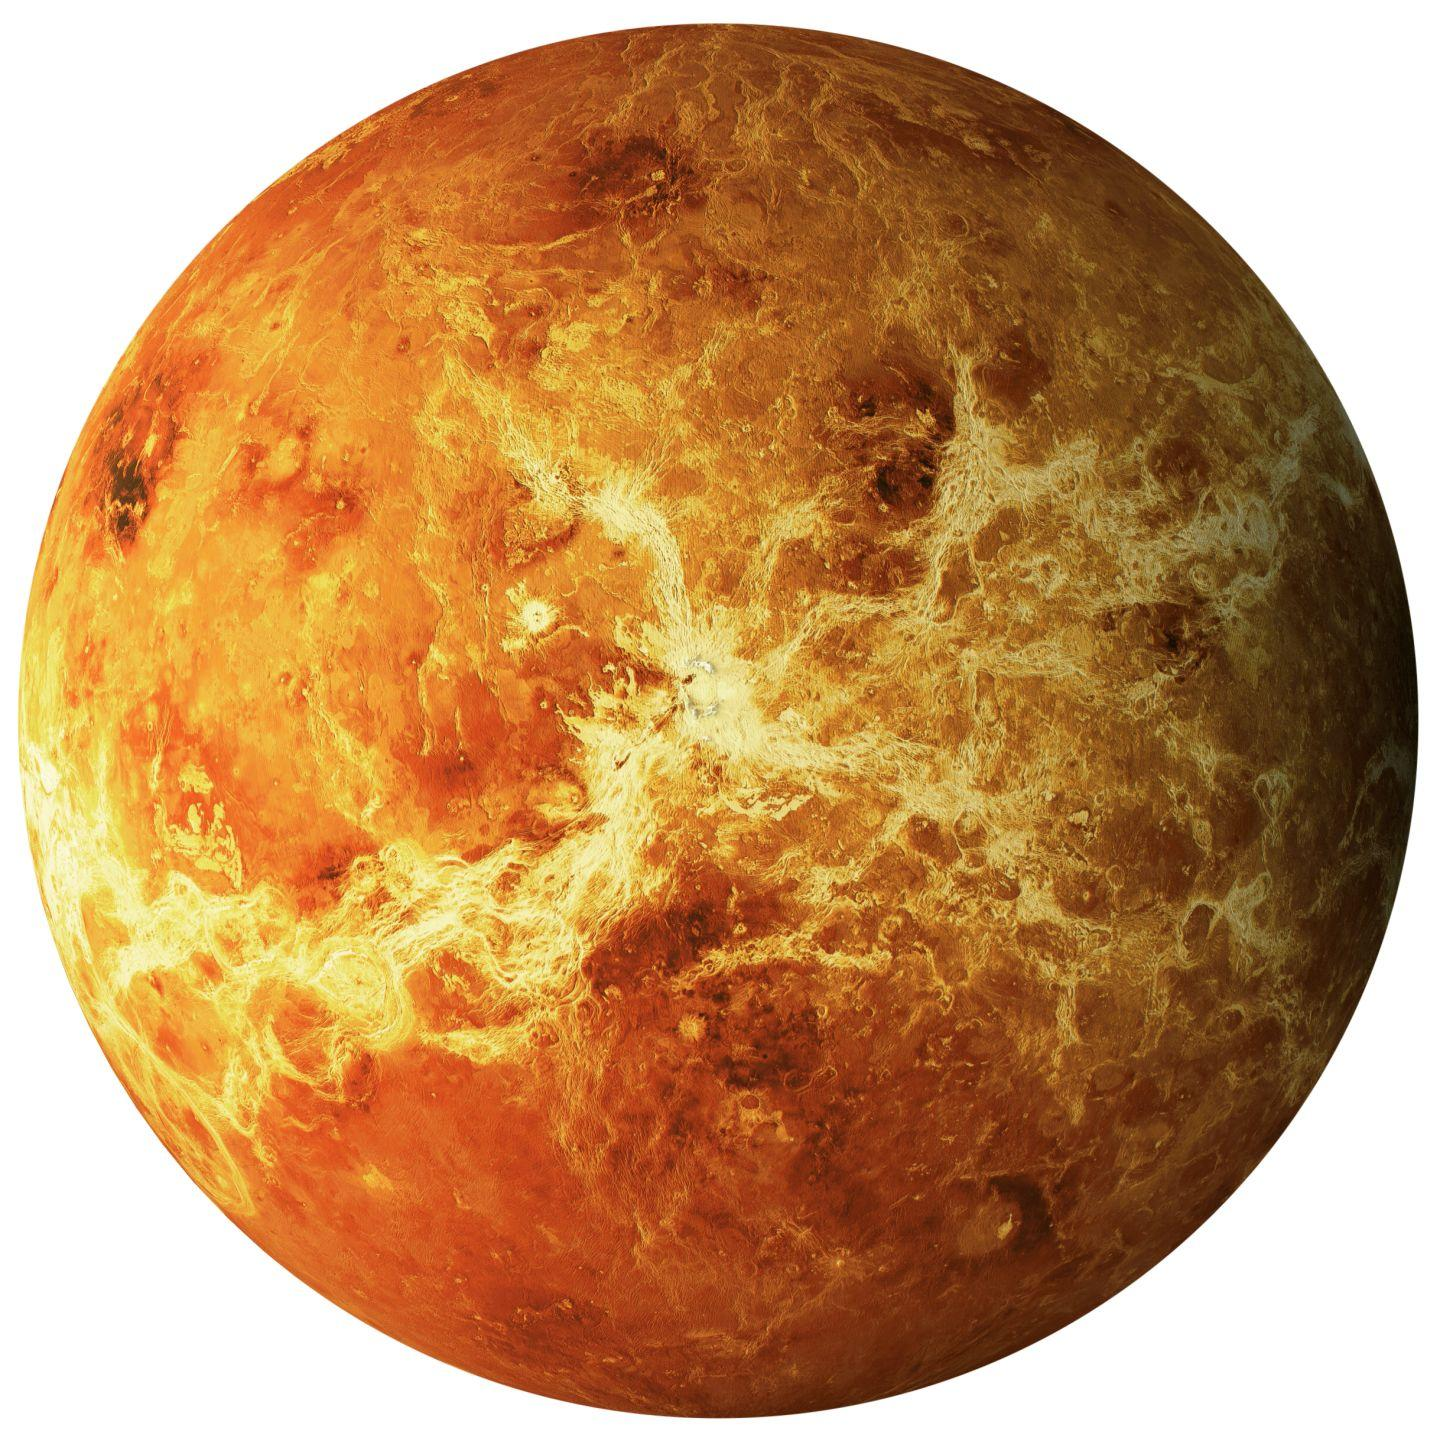 planet venus Quick venus facts venus does not have any moons or rings venus is nearly as big as the earth venus is often called the earth's sister planet the earth and venus are very similar in size with only.